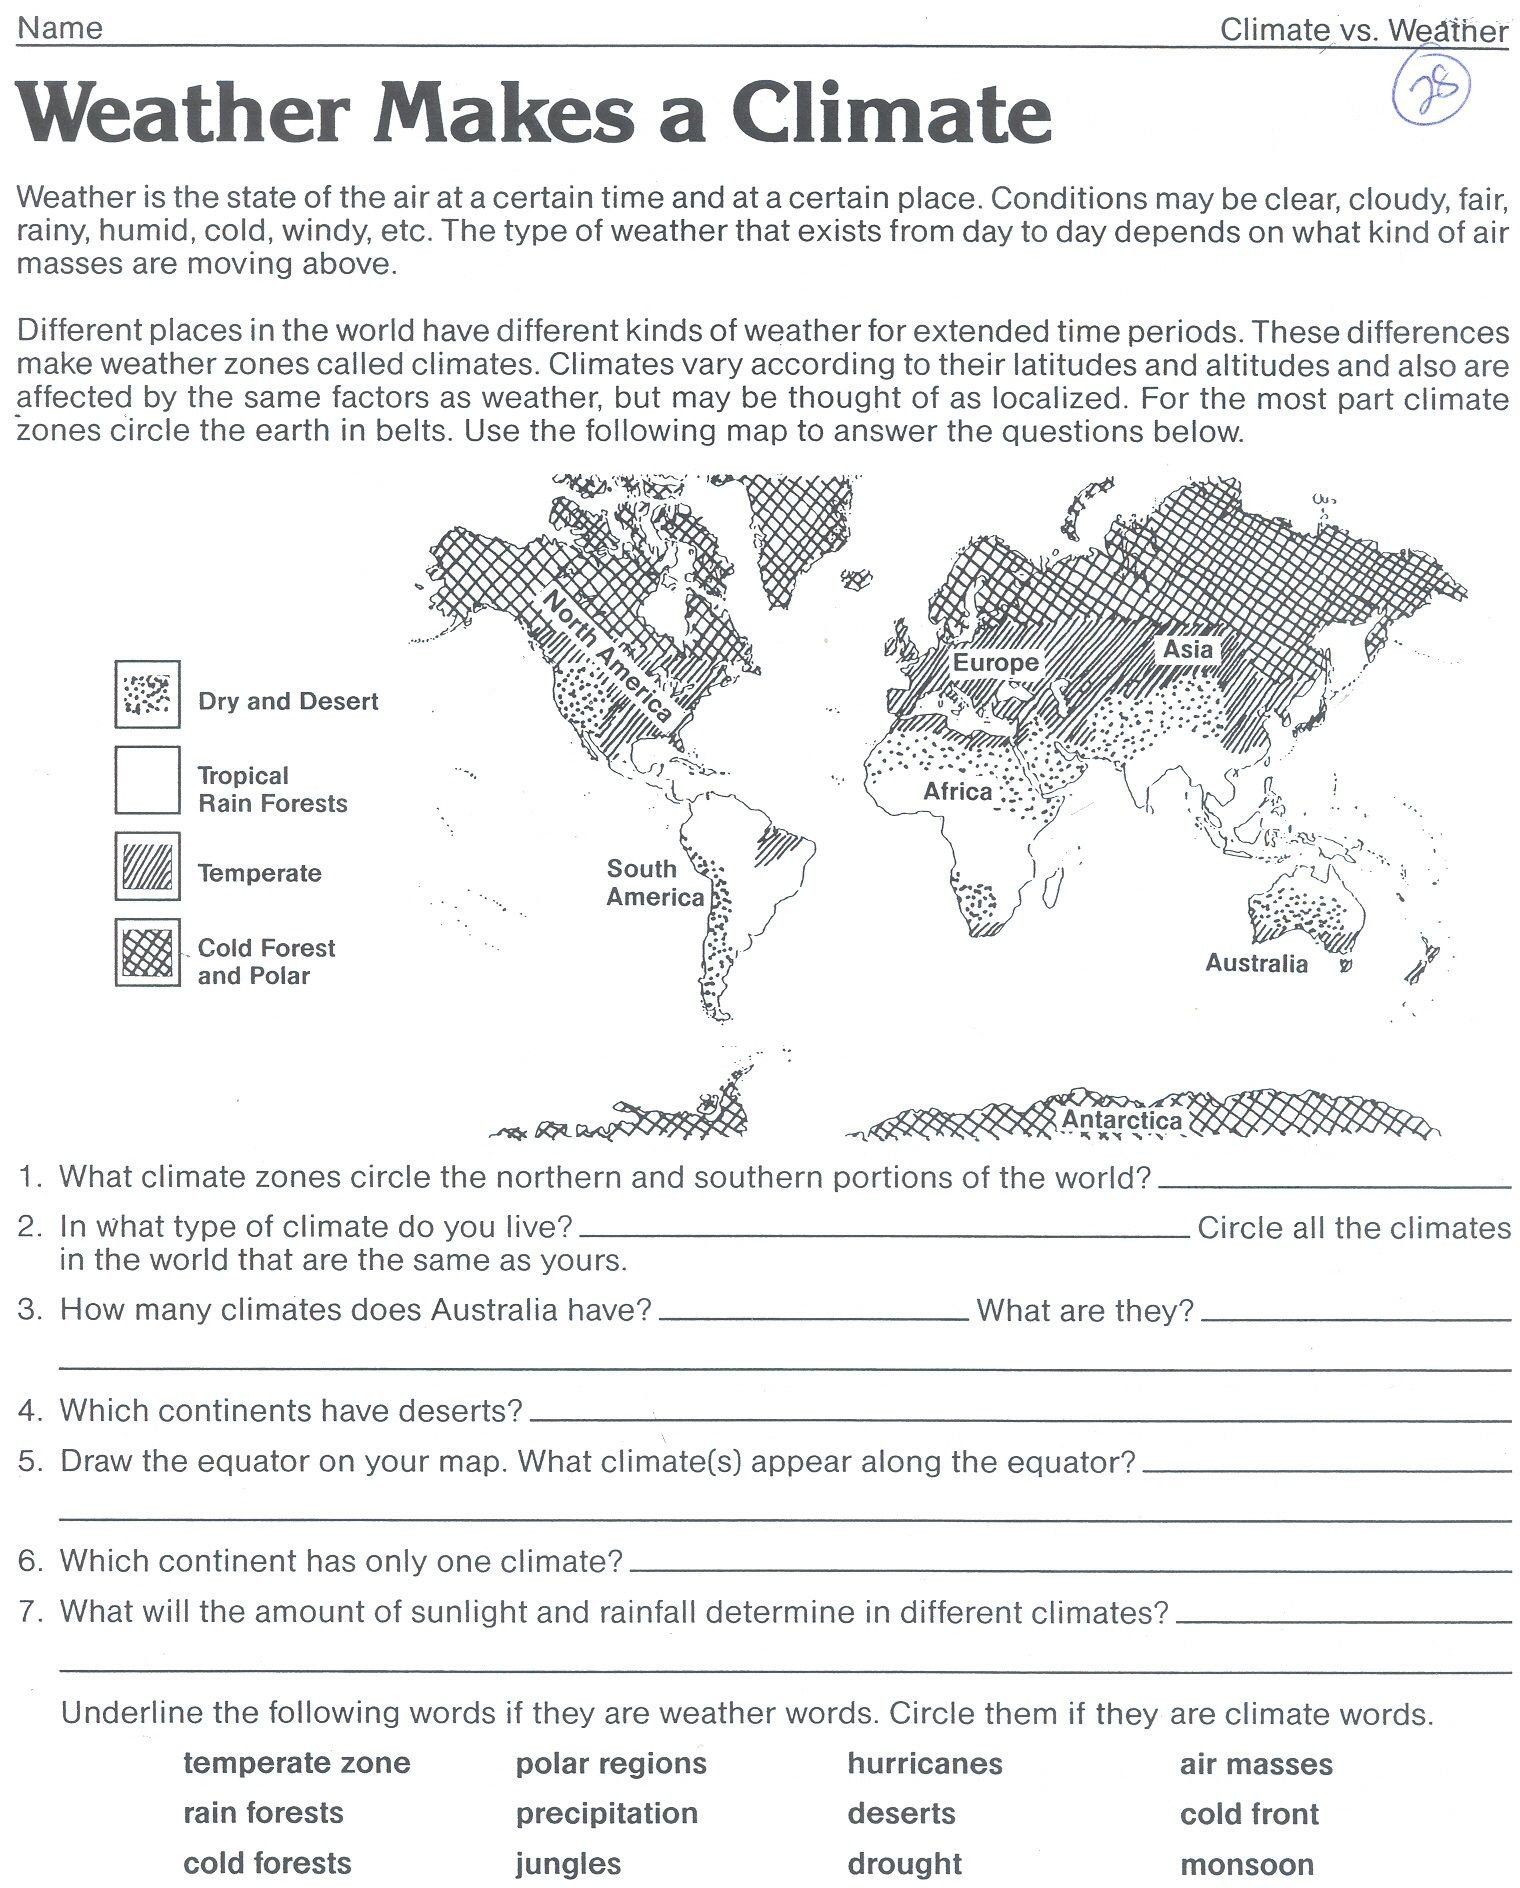 2nd Grade Weather Worksheets Weather Makes A Climate Worksheet